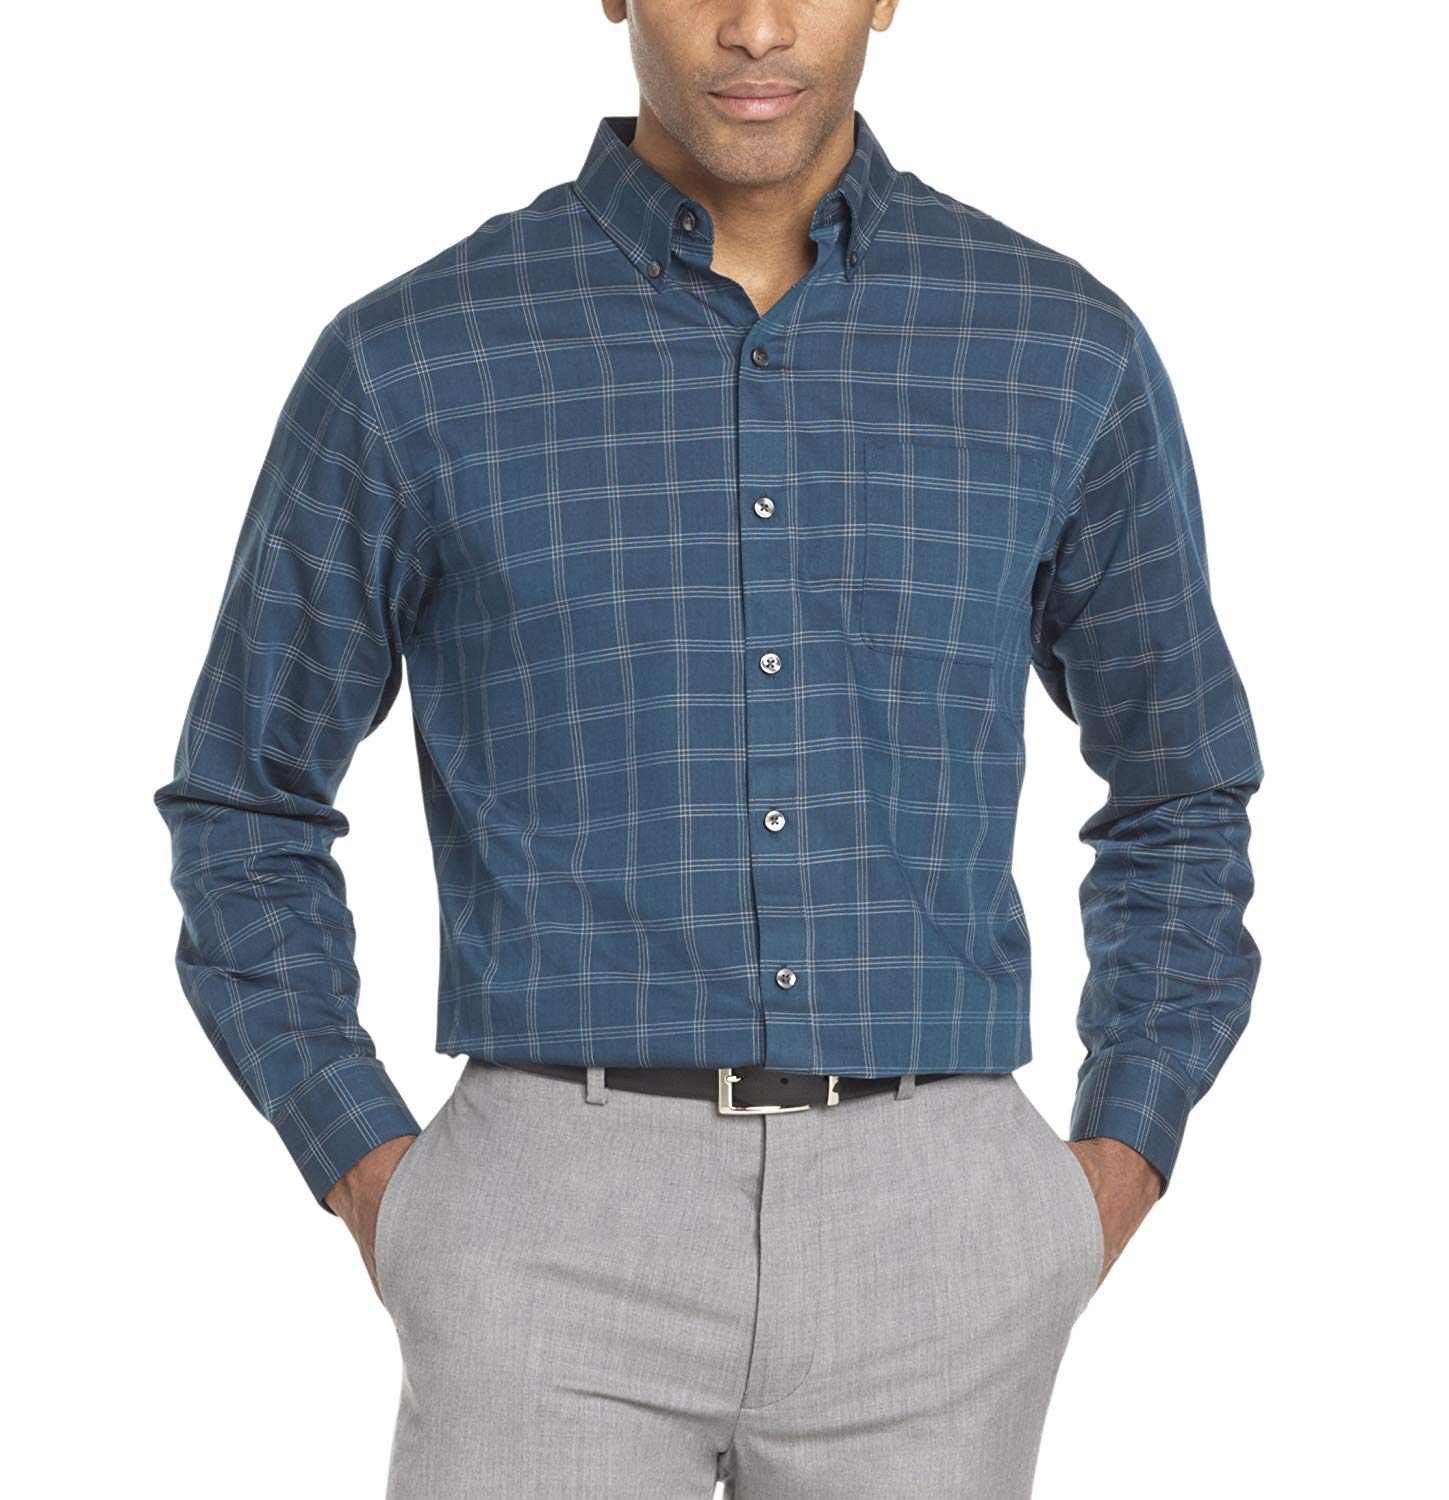 c3e85d0e0ad Van Heusen Wrinkle Free Short Sleeve Shirts – EDGE Engineering and ...